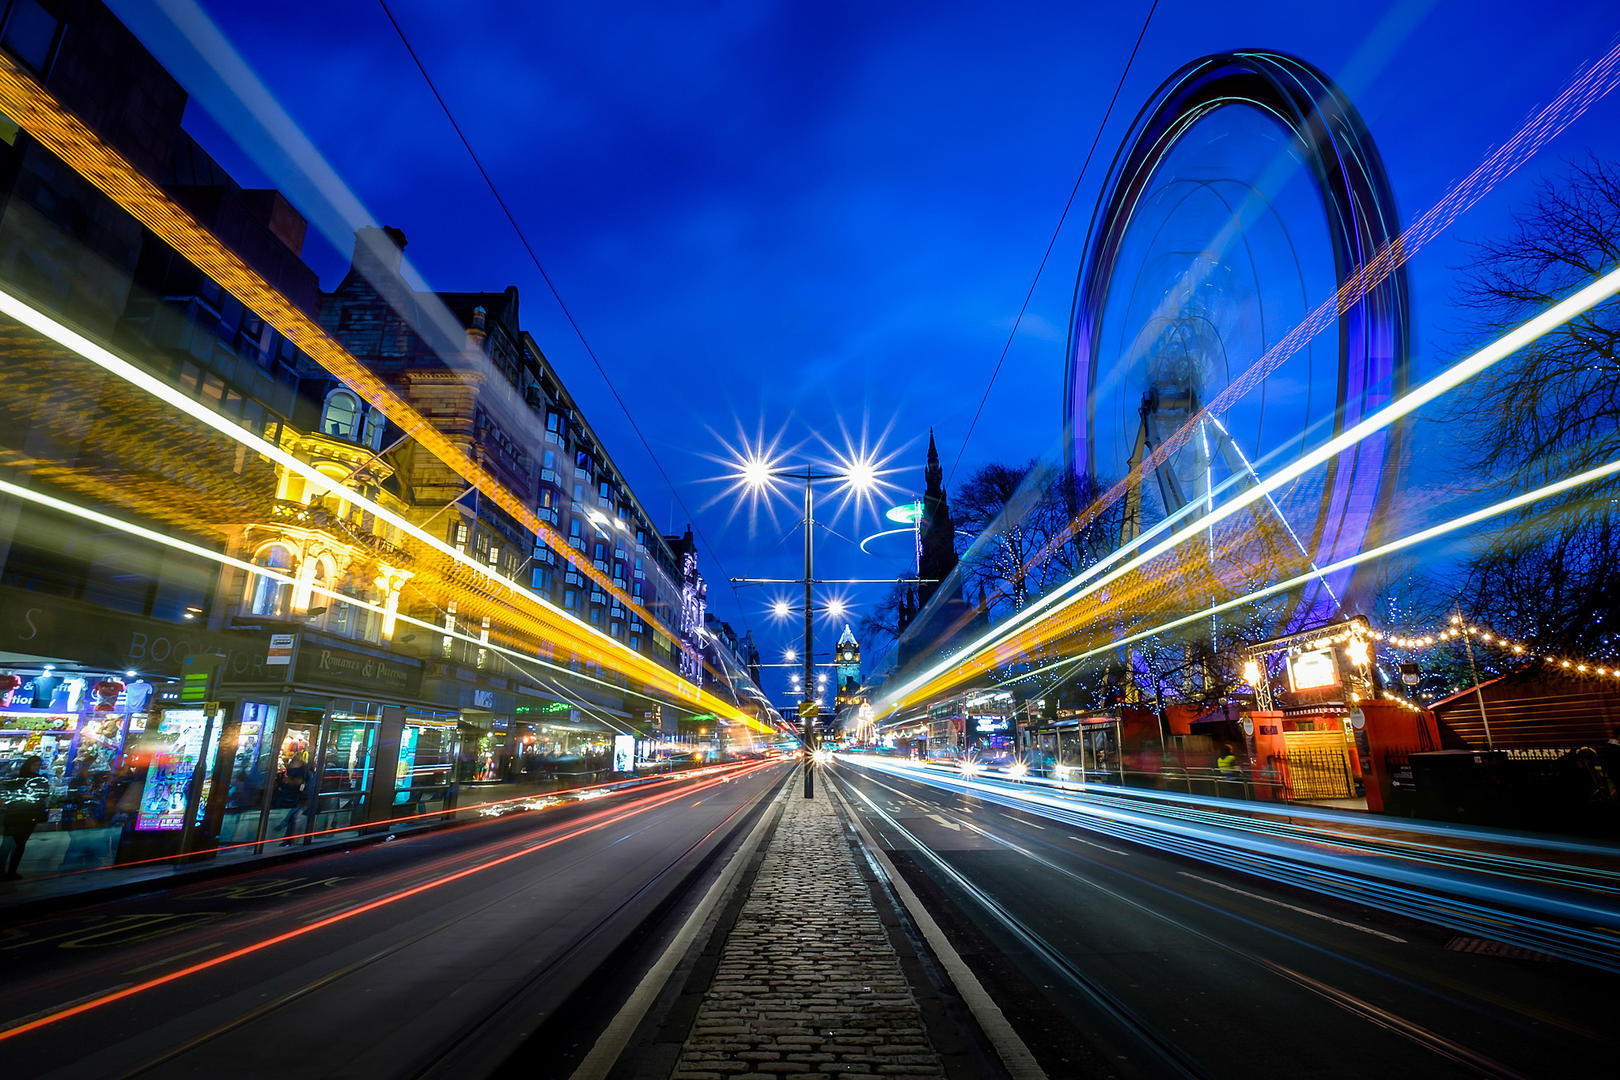 How to Shoot Light Trails | Photocrowd Photography Blog